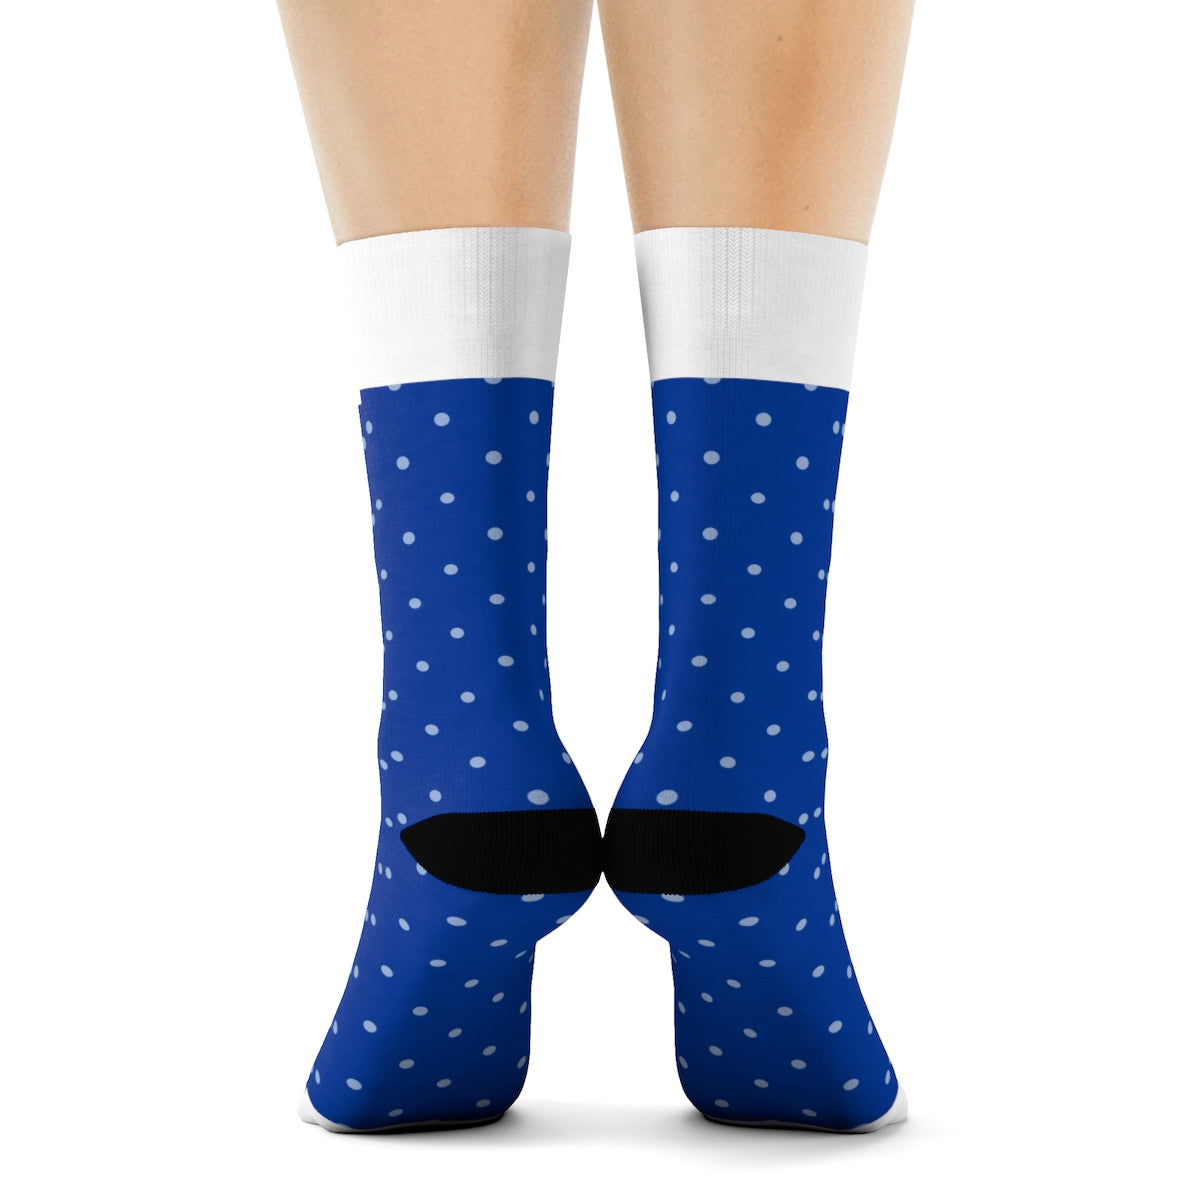 Navy Blue and White Polka Dot Crew Socks All Over Prints - Polka Dotted All The Things Boutique